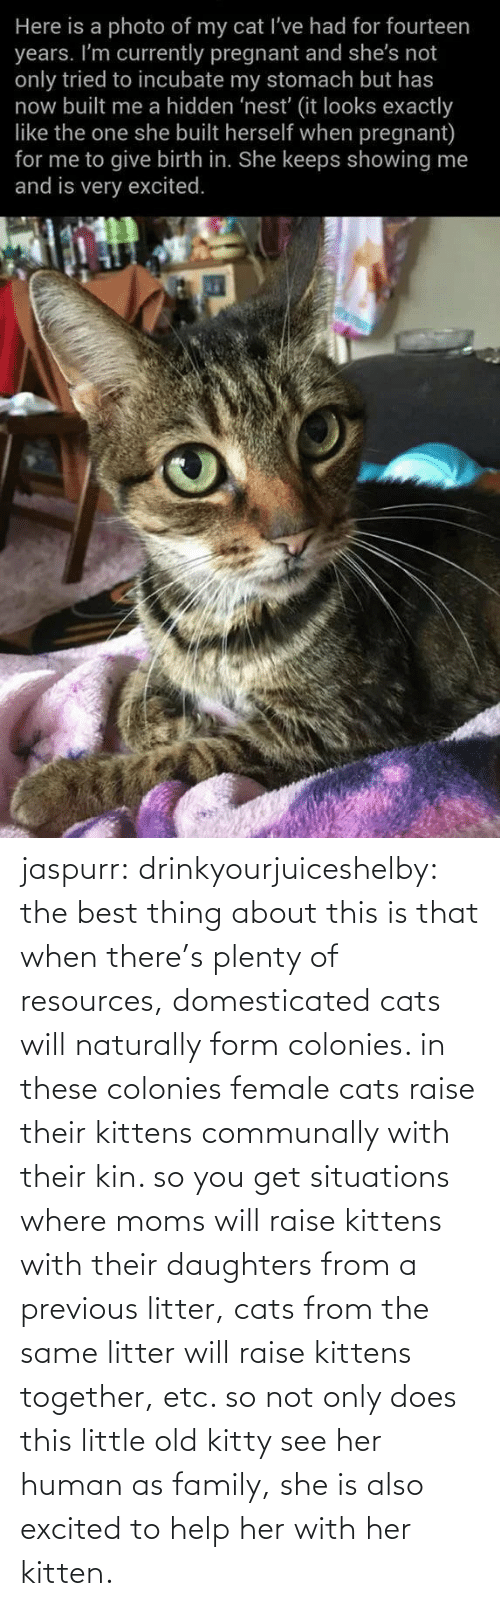 excited: jaspurr:  drinkyourjuiceshelby:    the best thing about this is that when there's plenty of resources, domesticated cats will naturally form colonies. in these colonies female cats raise their kittens communally with their kin. so you get situations where moms will raise kittens with their daughters from a previous litter, cats from the same litter will raise kittens together, etc. so not only does this little old kitty see her human as family, she is also excited to help her with her kitten.